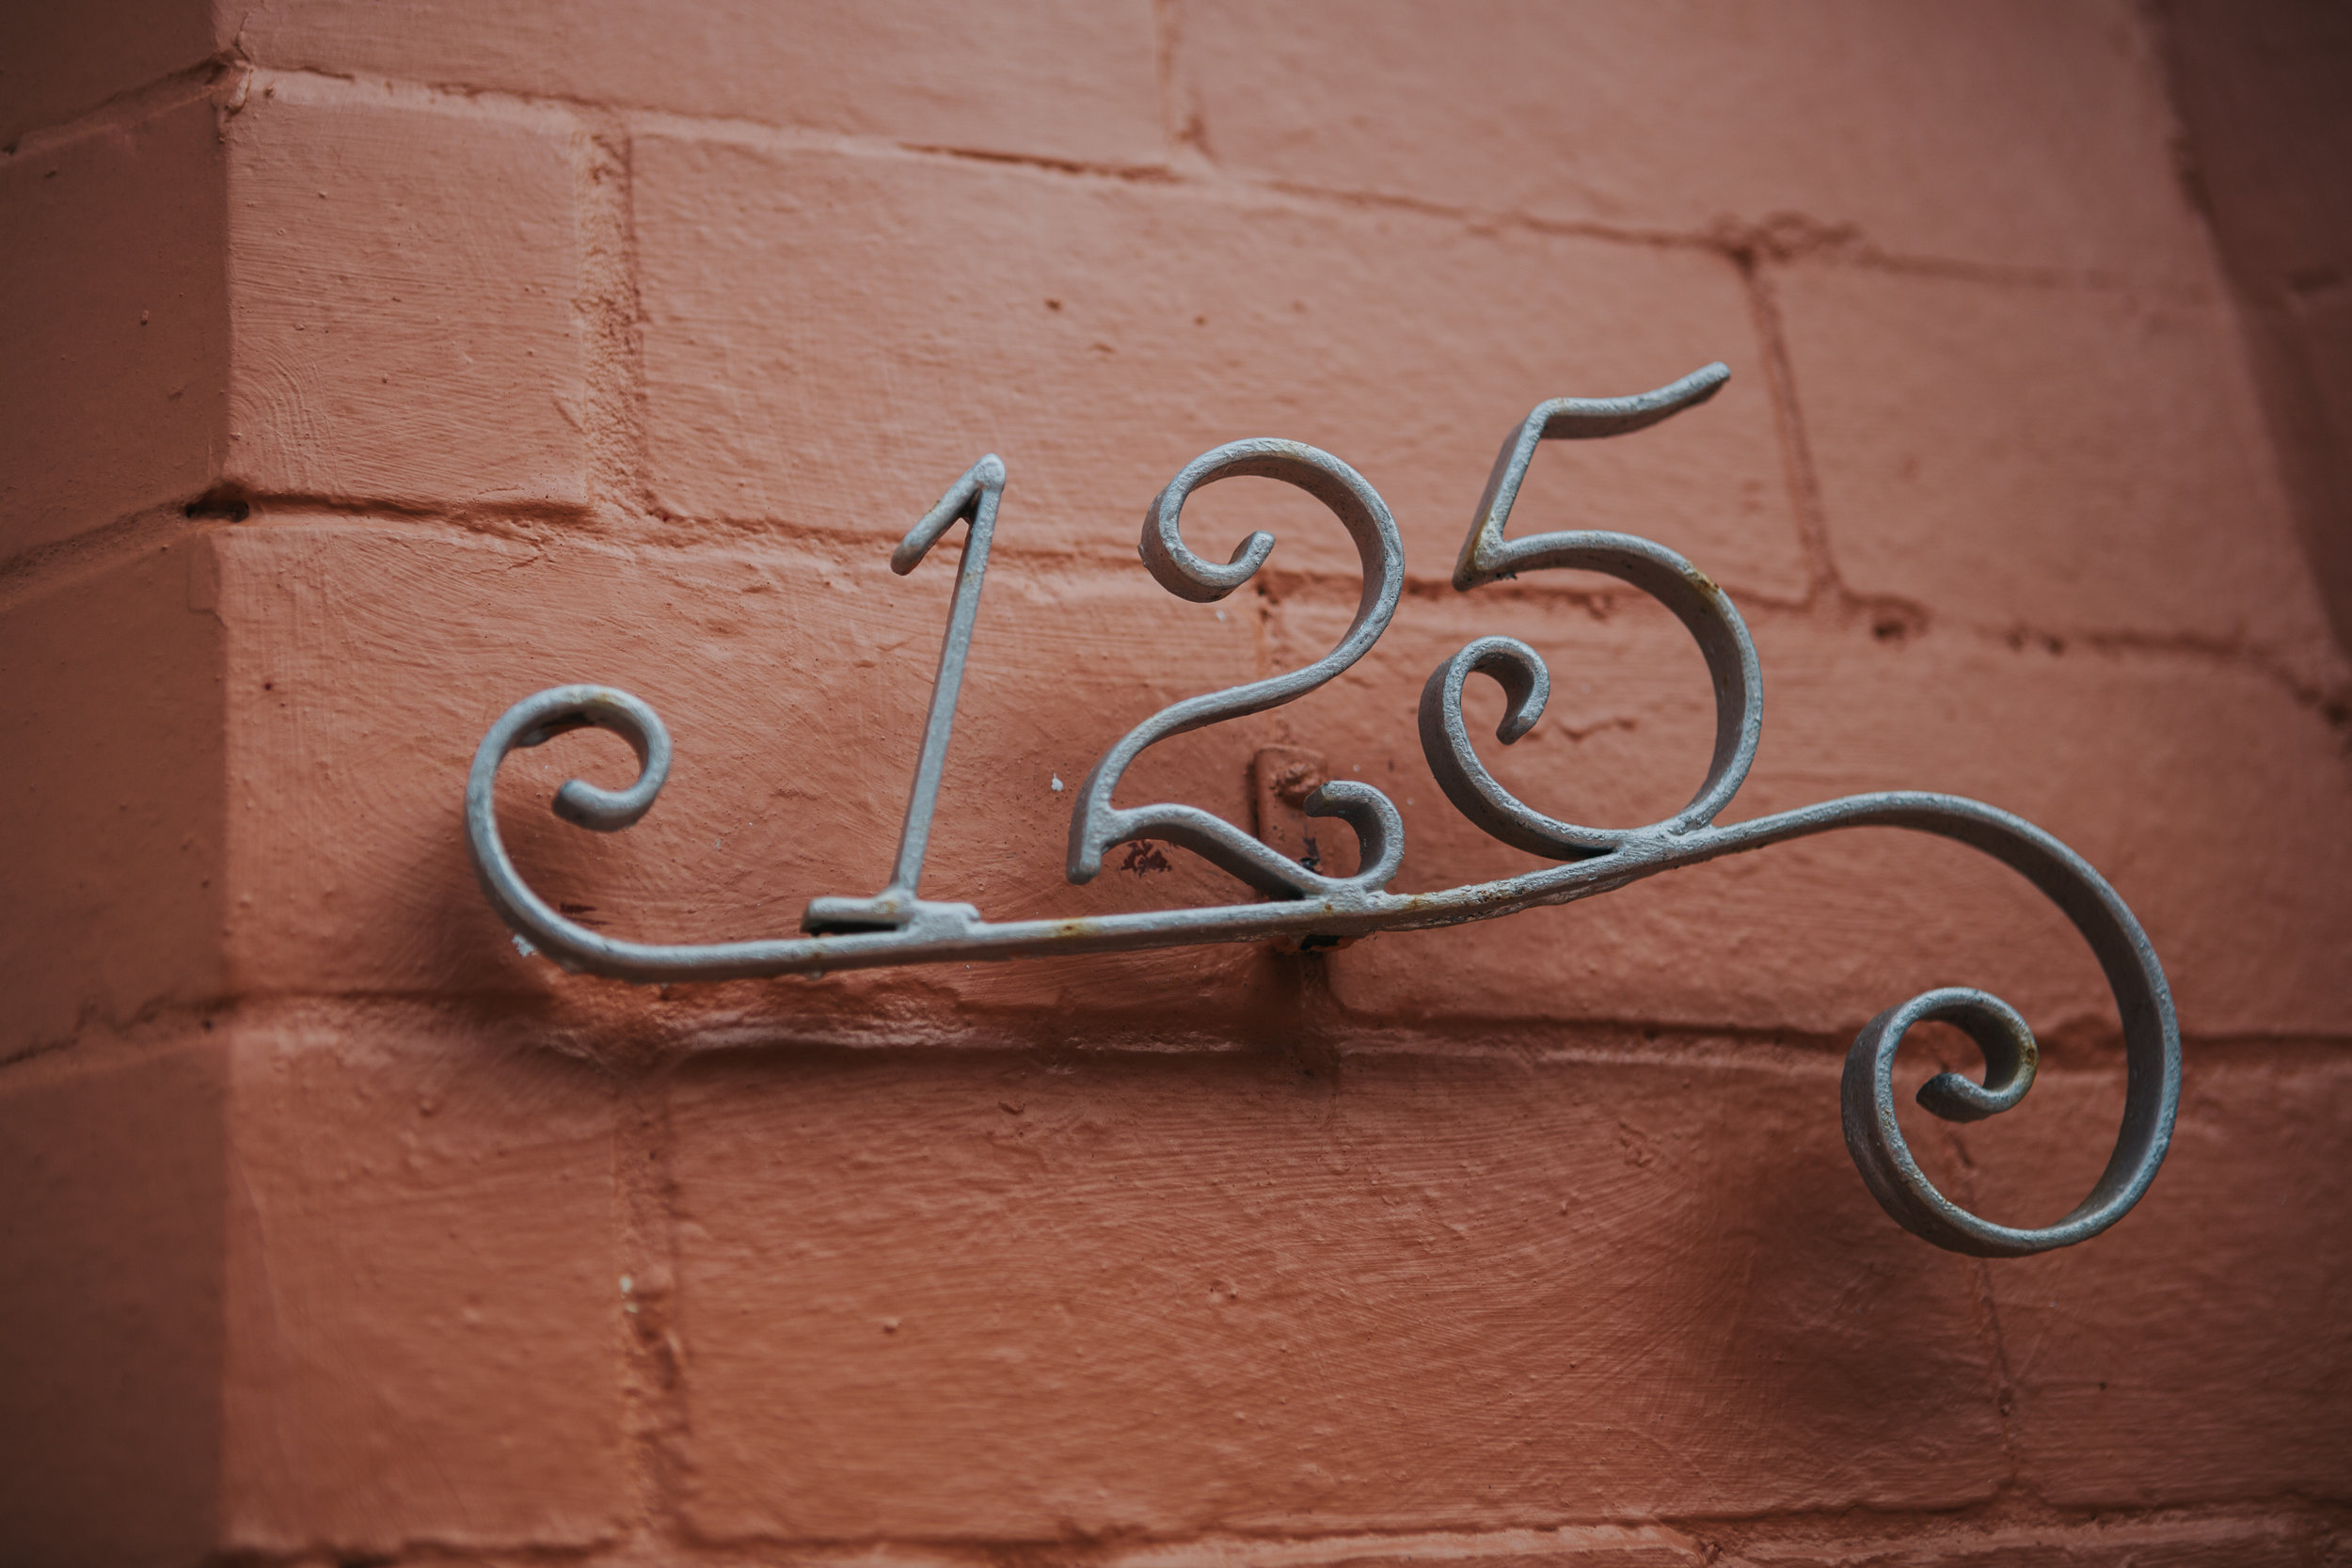 The number 125 of the families house in Liverpool.